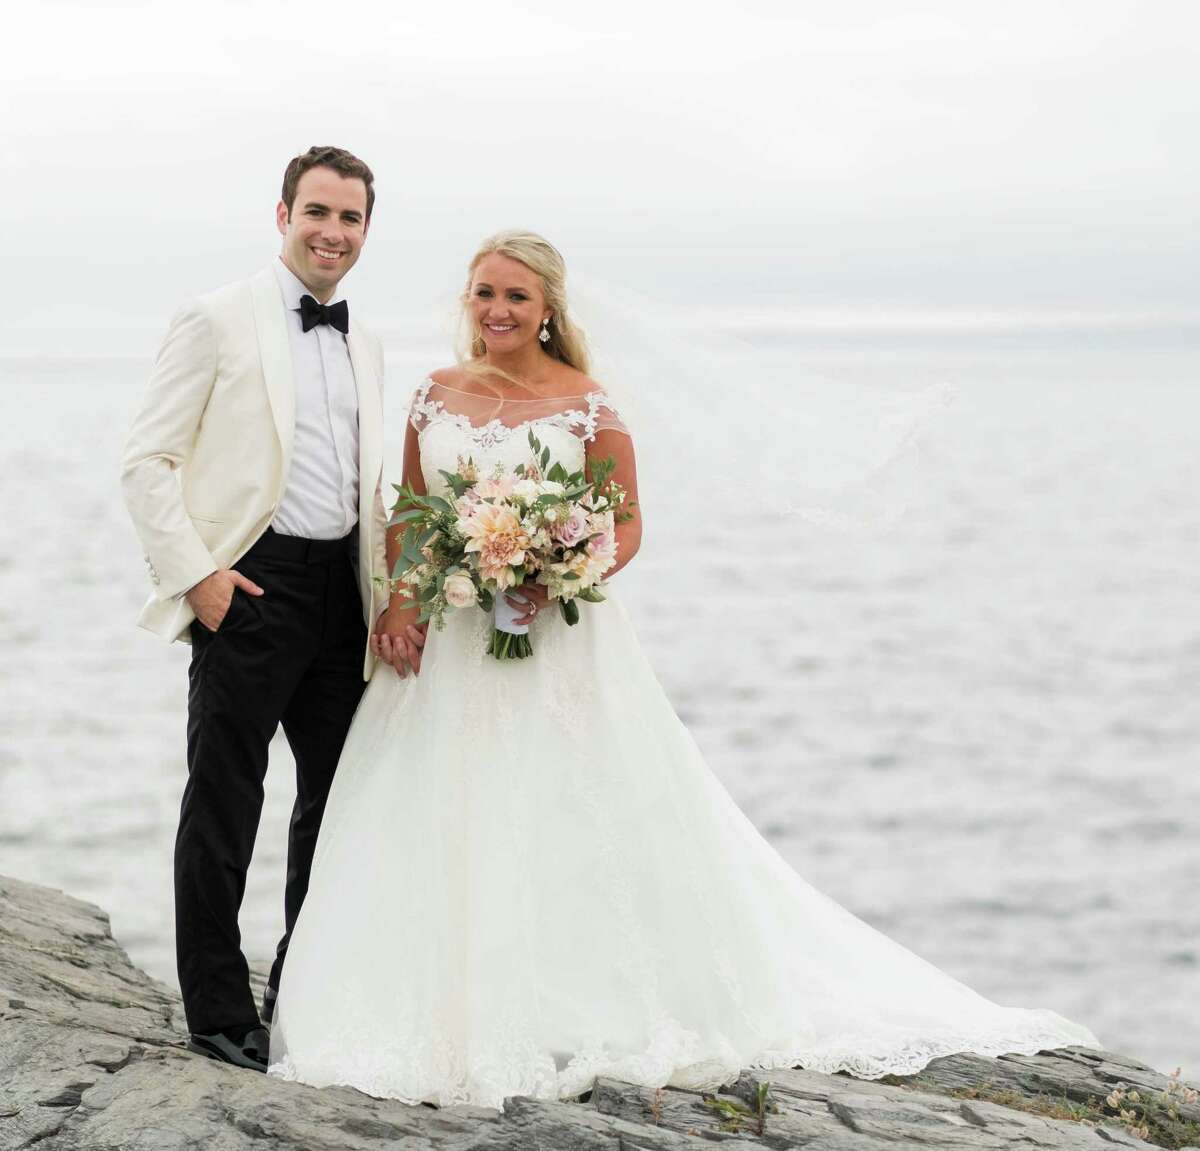 Emily Veronica Wyckoff and Anthony James DePalma were married Aug. 5 at St. Joseph?'s Church in Newport, R.I.